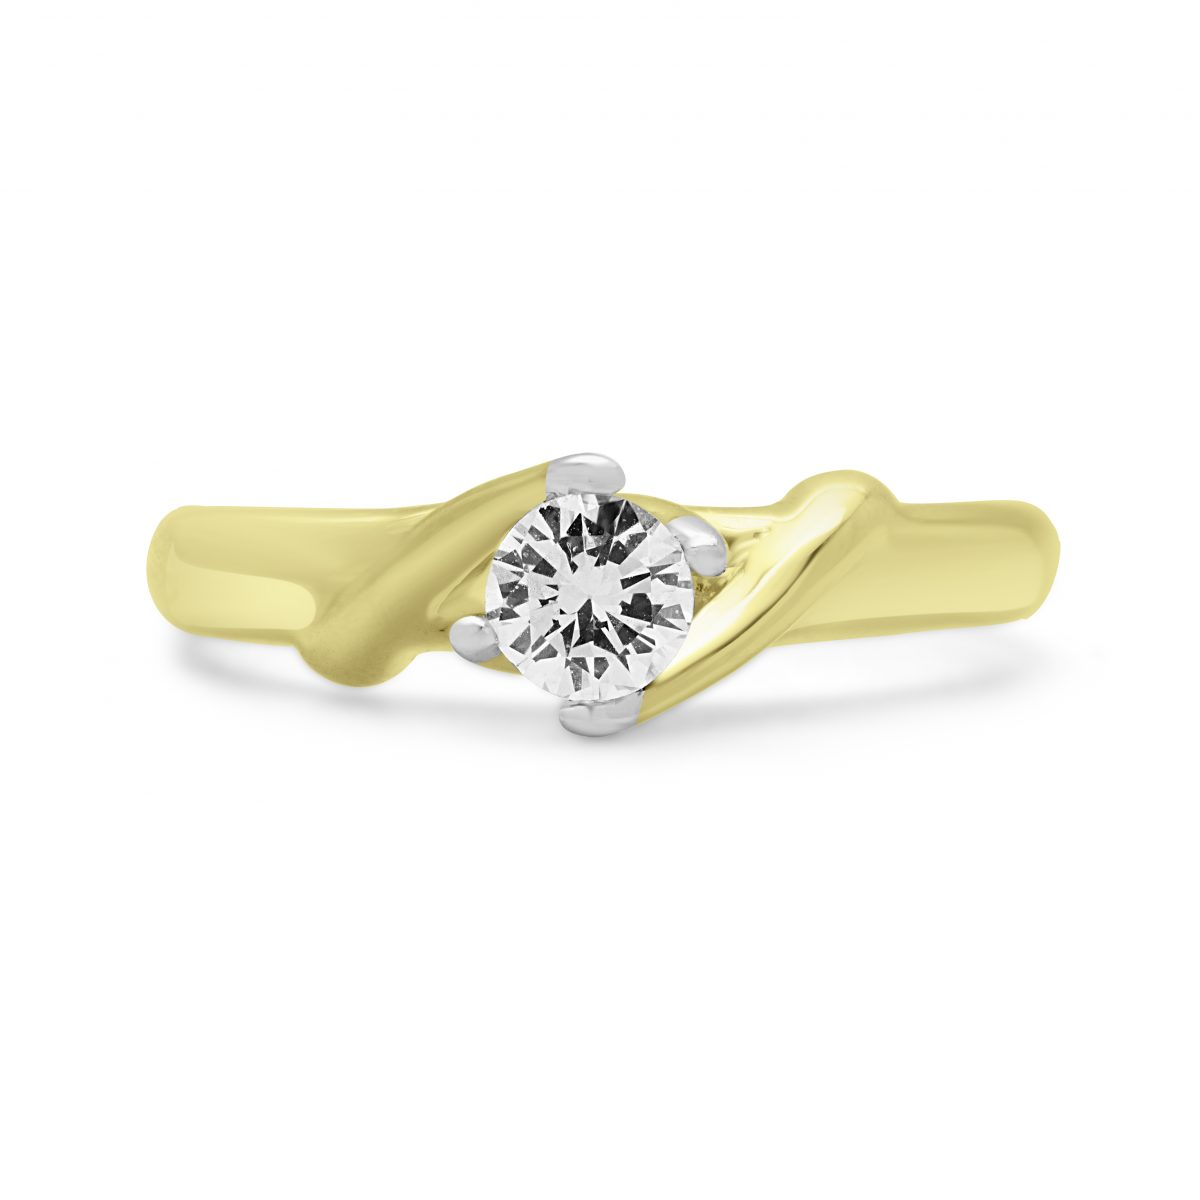 alternate ring gold engagement jewellery wgrg white solitaire matching regular round in halfway with band diamond